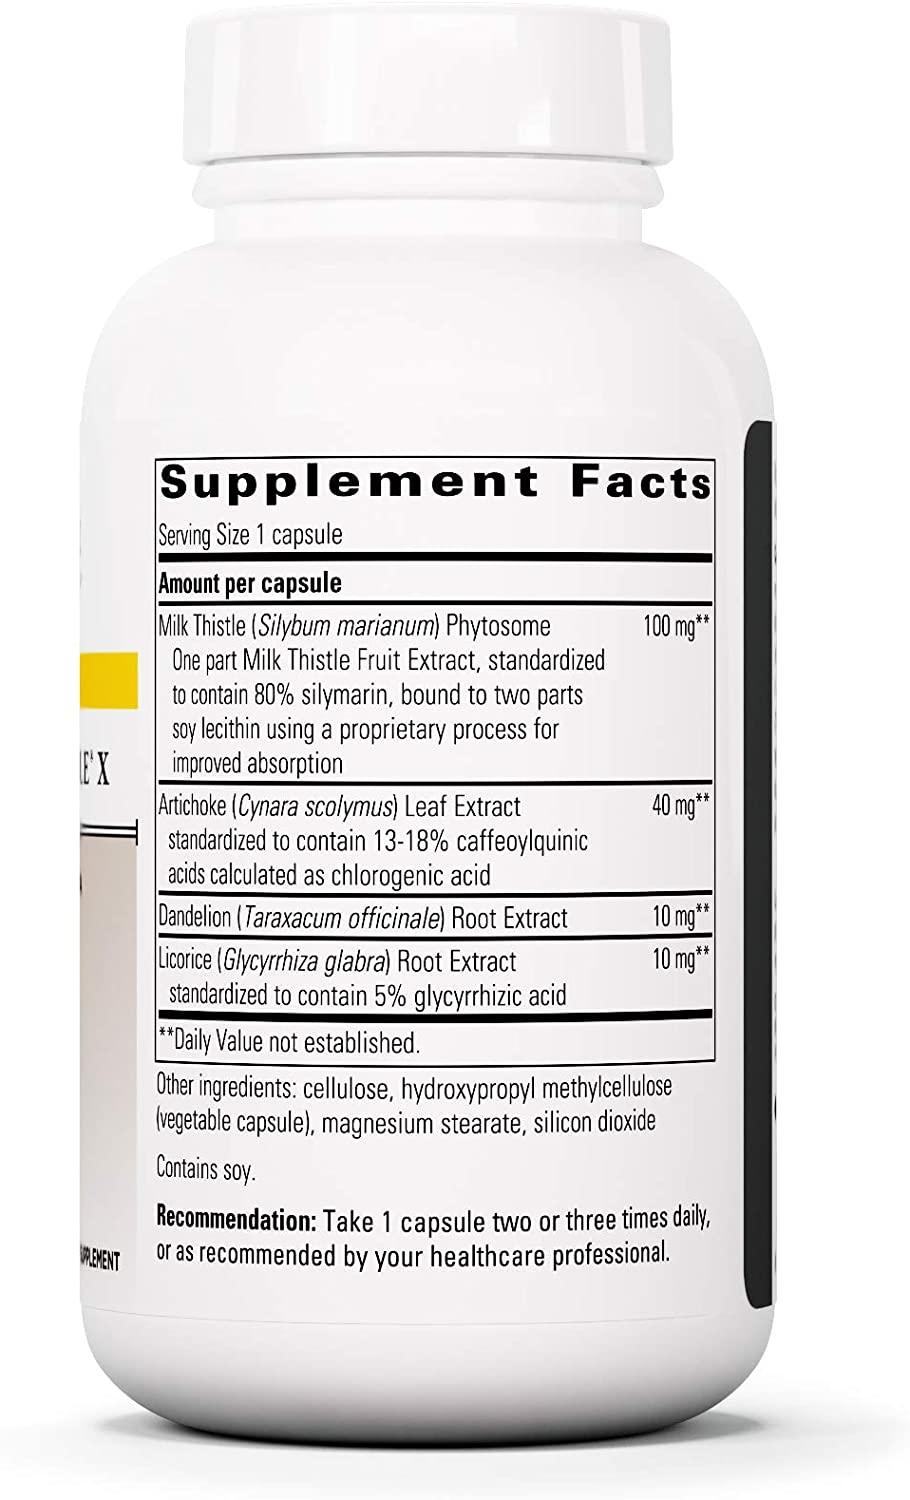 Integrative Therapeutics – Super Milk Thistle X – Liver Support Formula – Blended w Artichoke, Dandelion Lead, Licorice Root Extracts – 120 Capsules